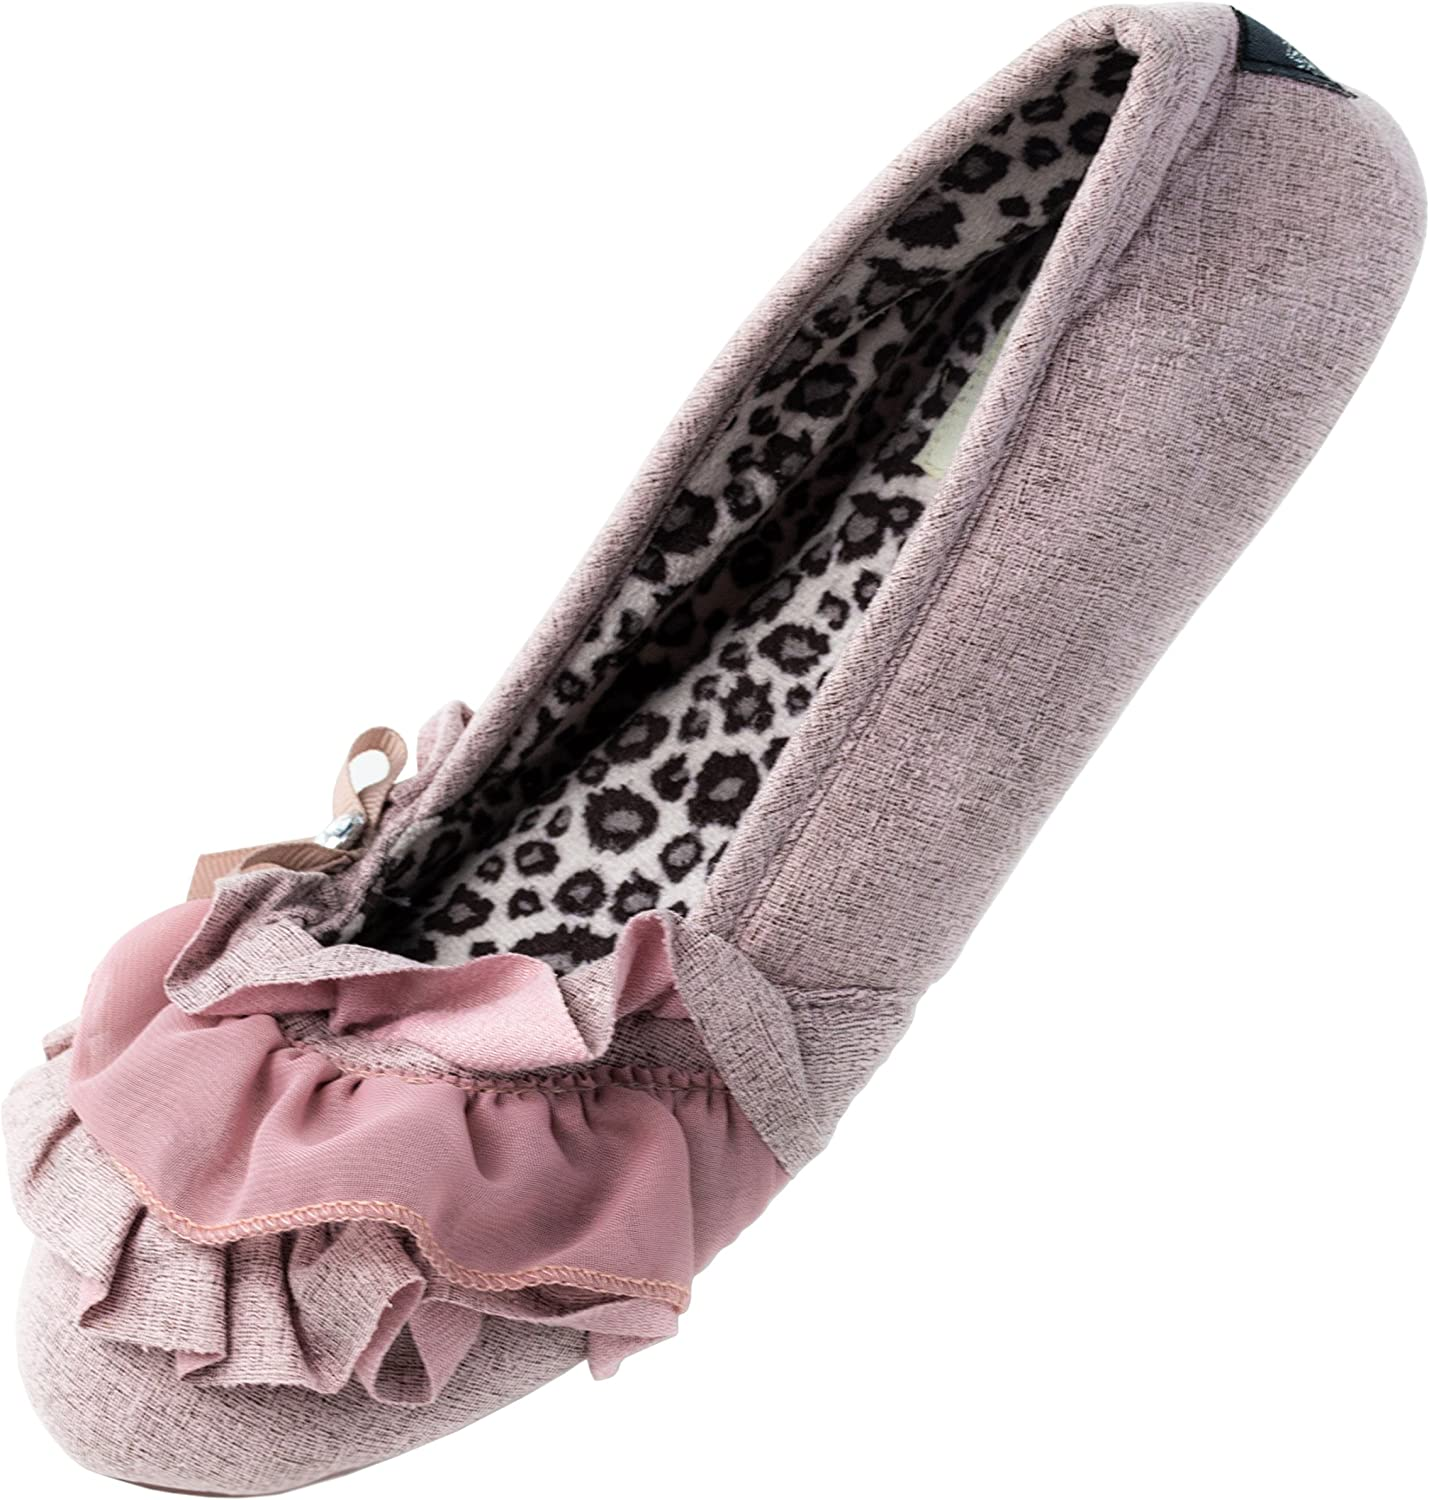 Red Co. Soft and Comfortable Ballerina Slippers Pink Leopard